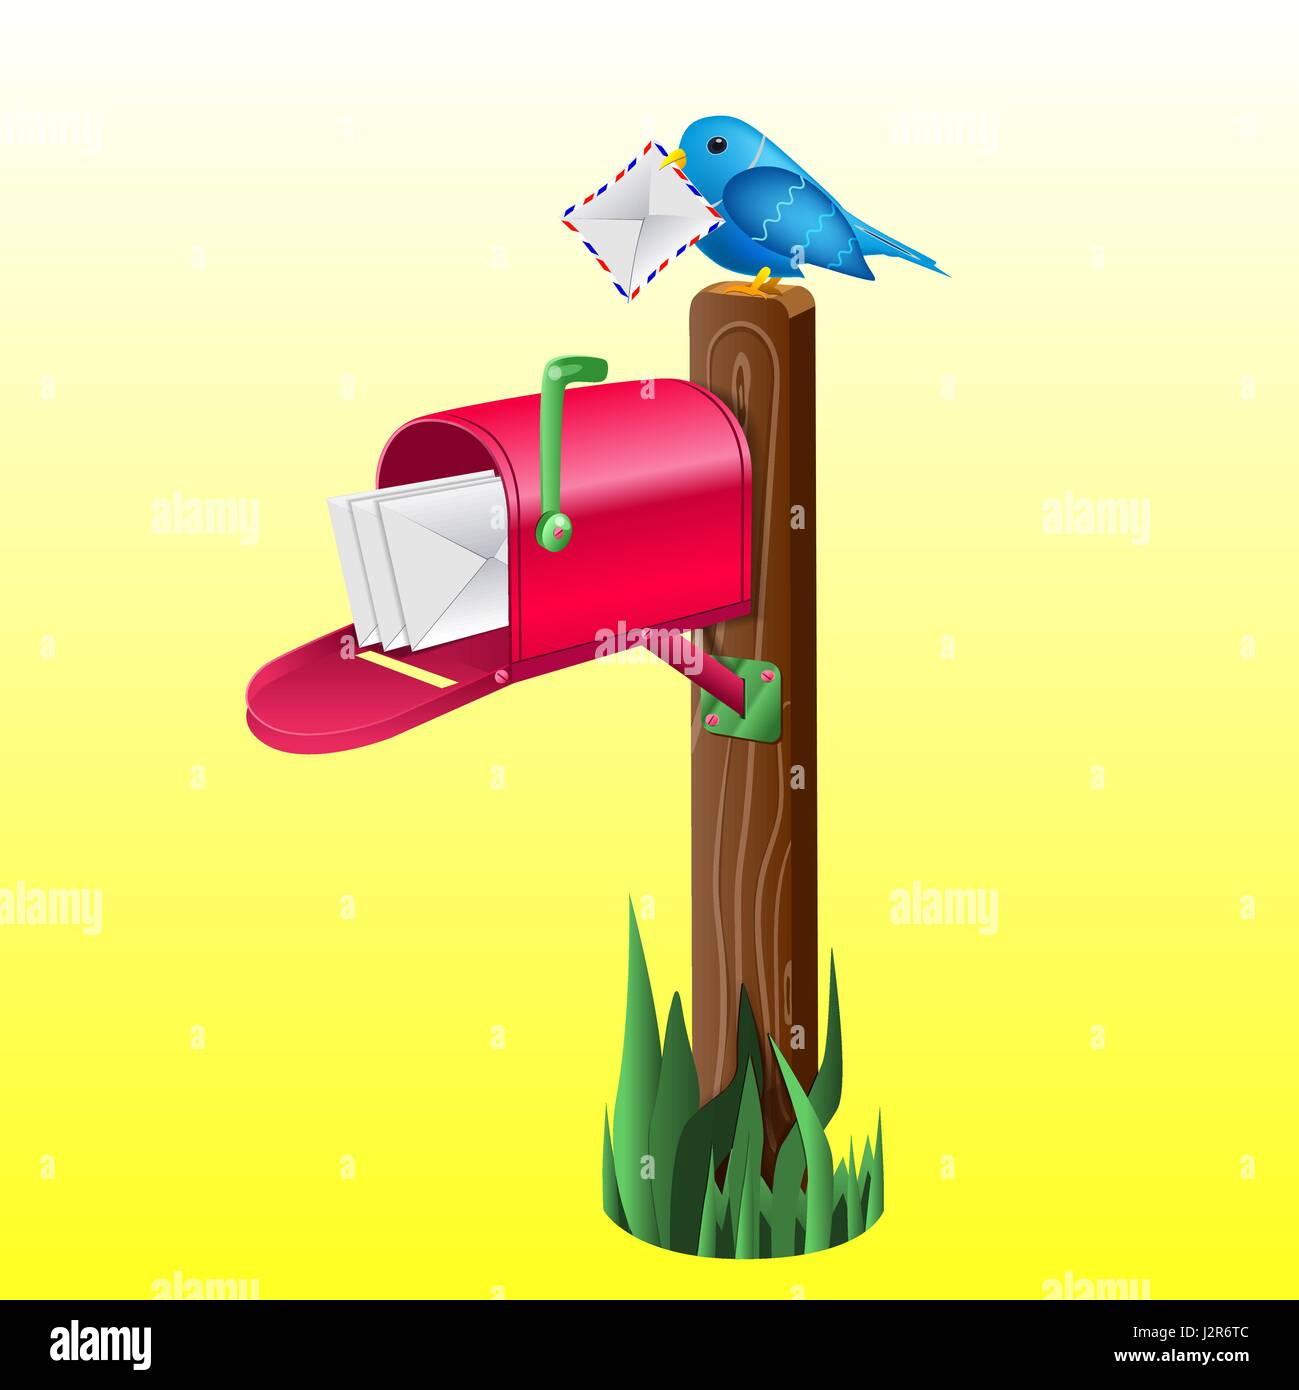 Outdoor red mailbox full of letters - Stock Image